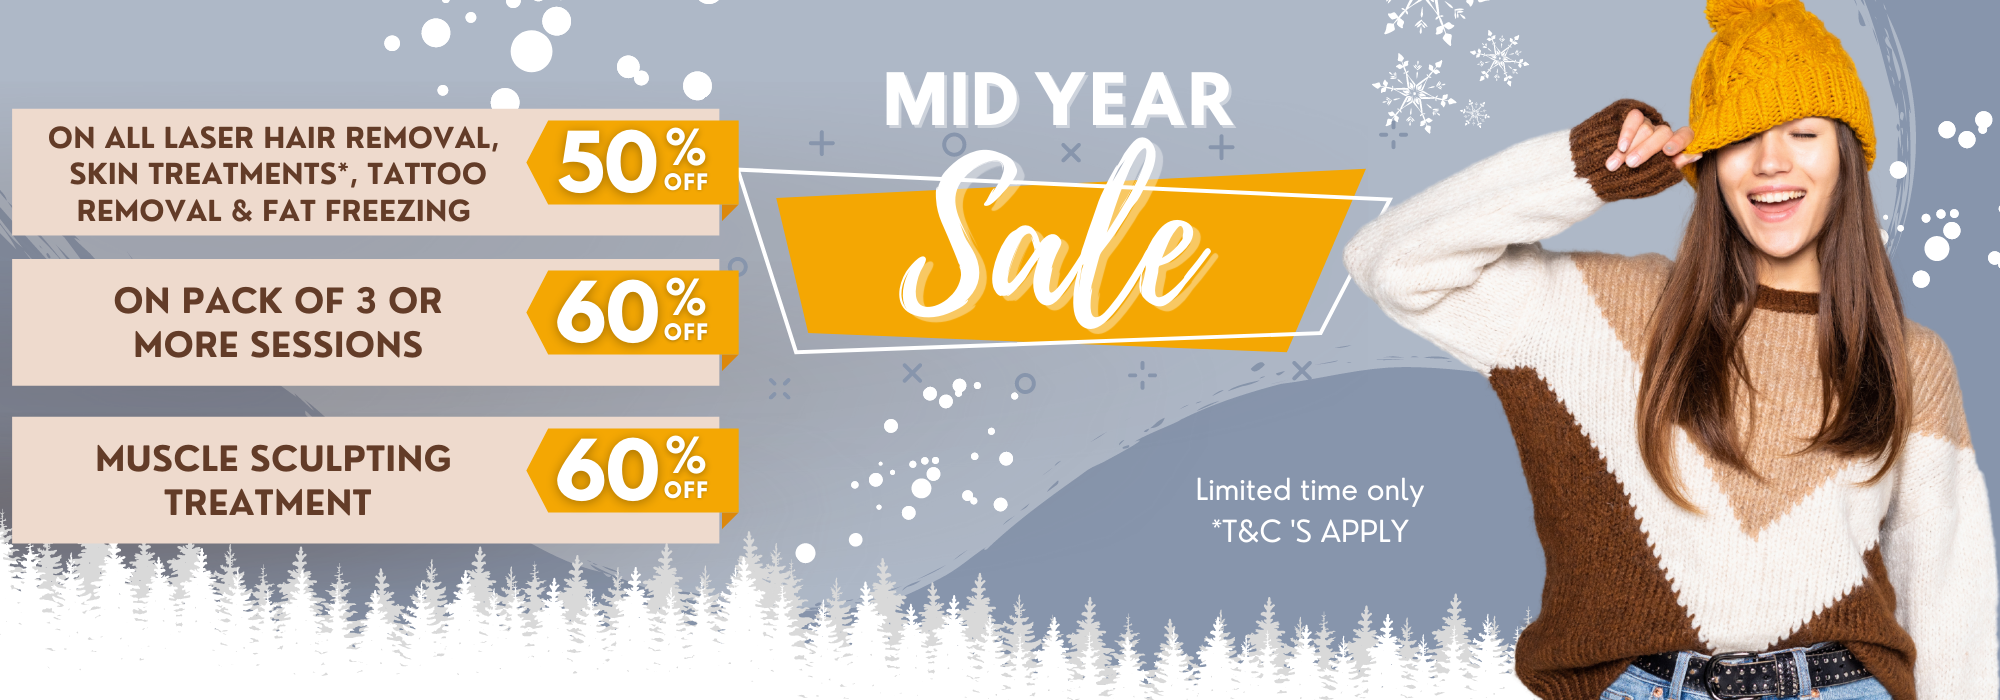 Banner mid year sale